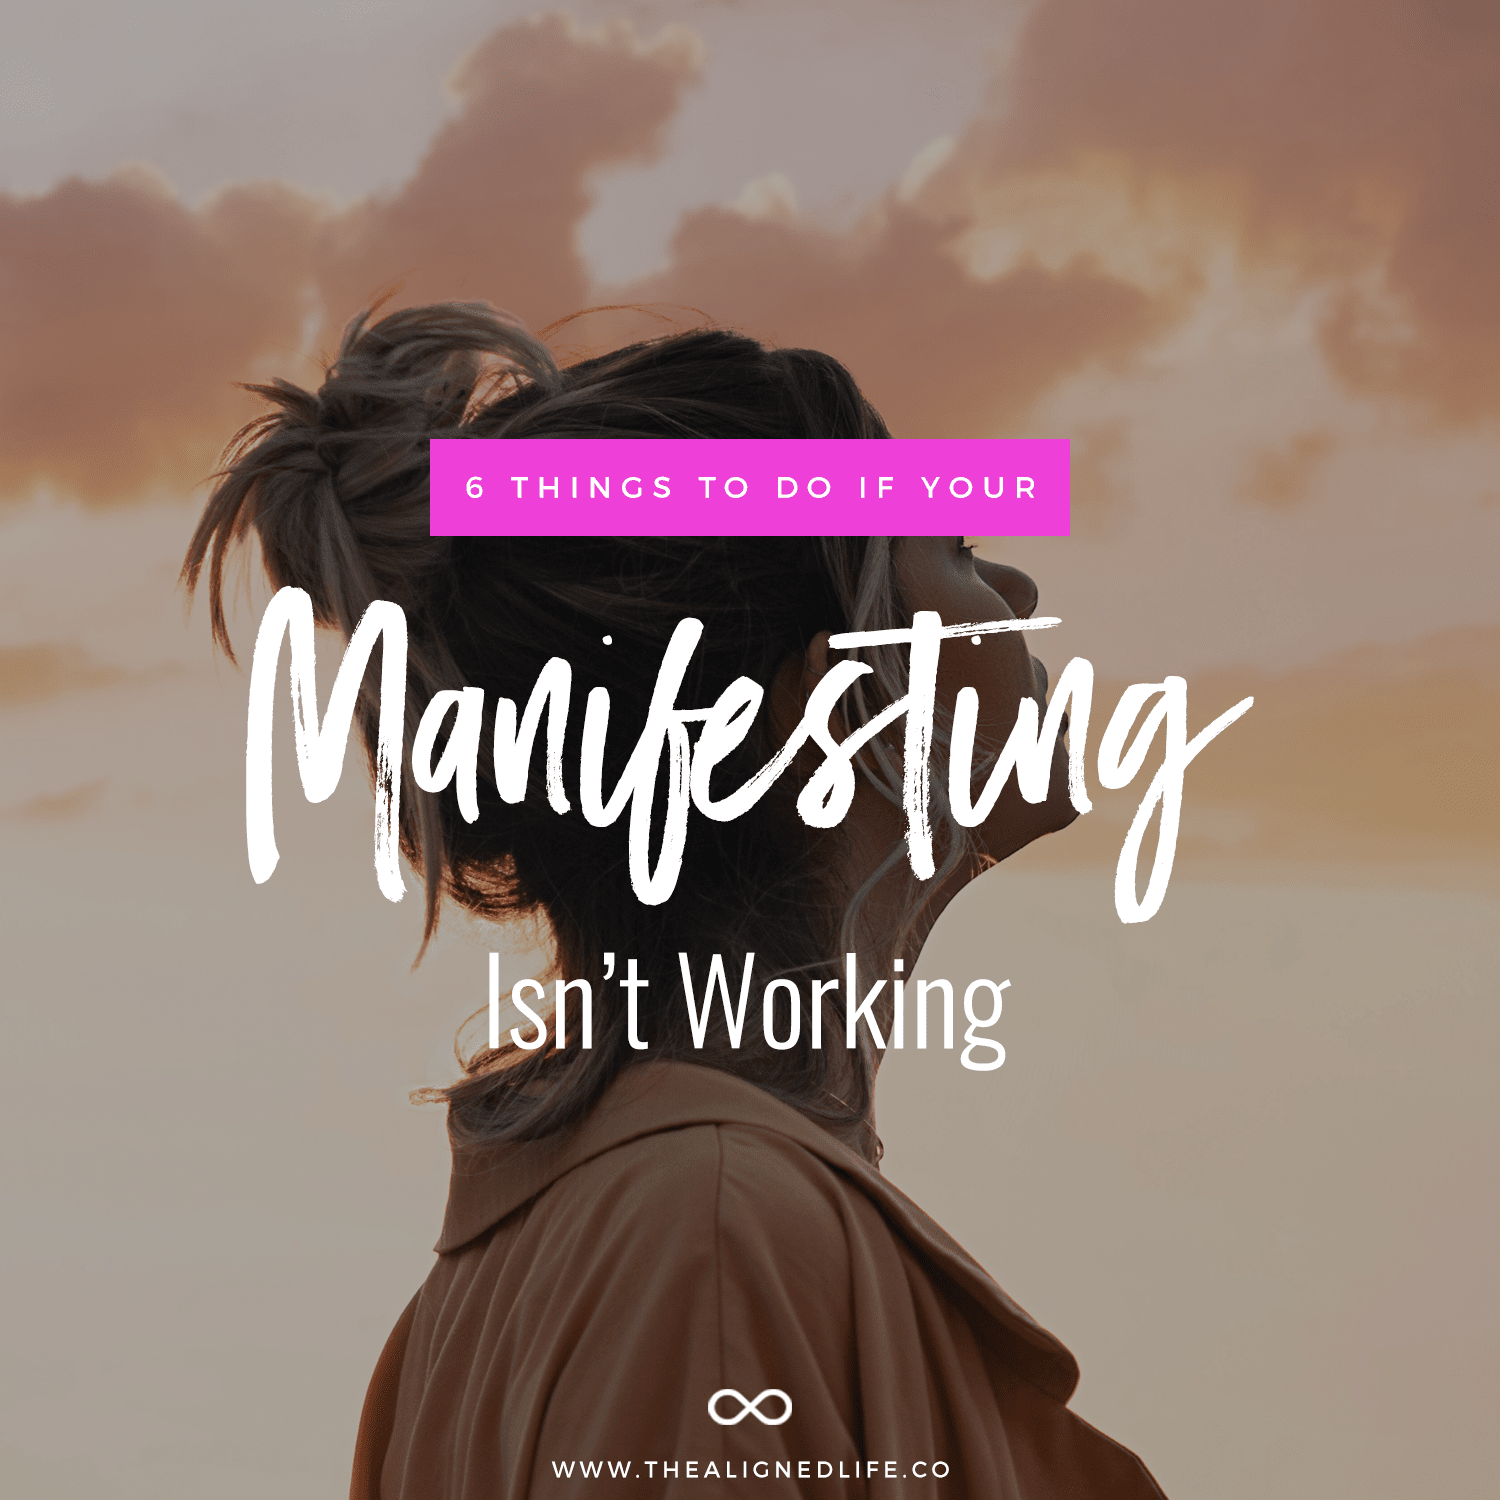 6 Things To Do If Your Manifesting Isn't Working